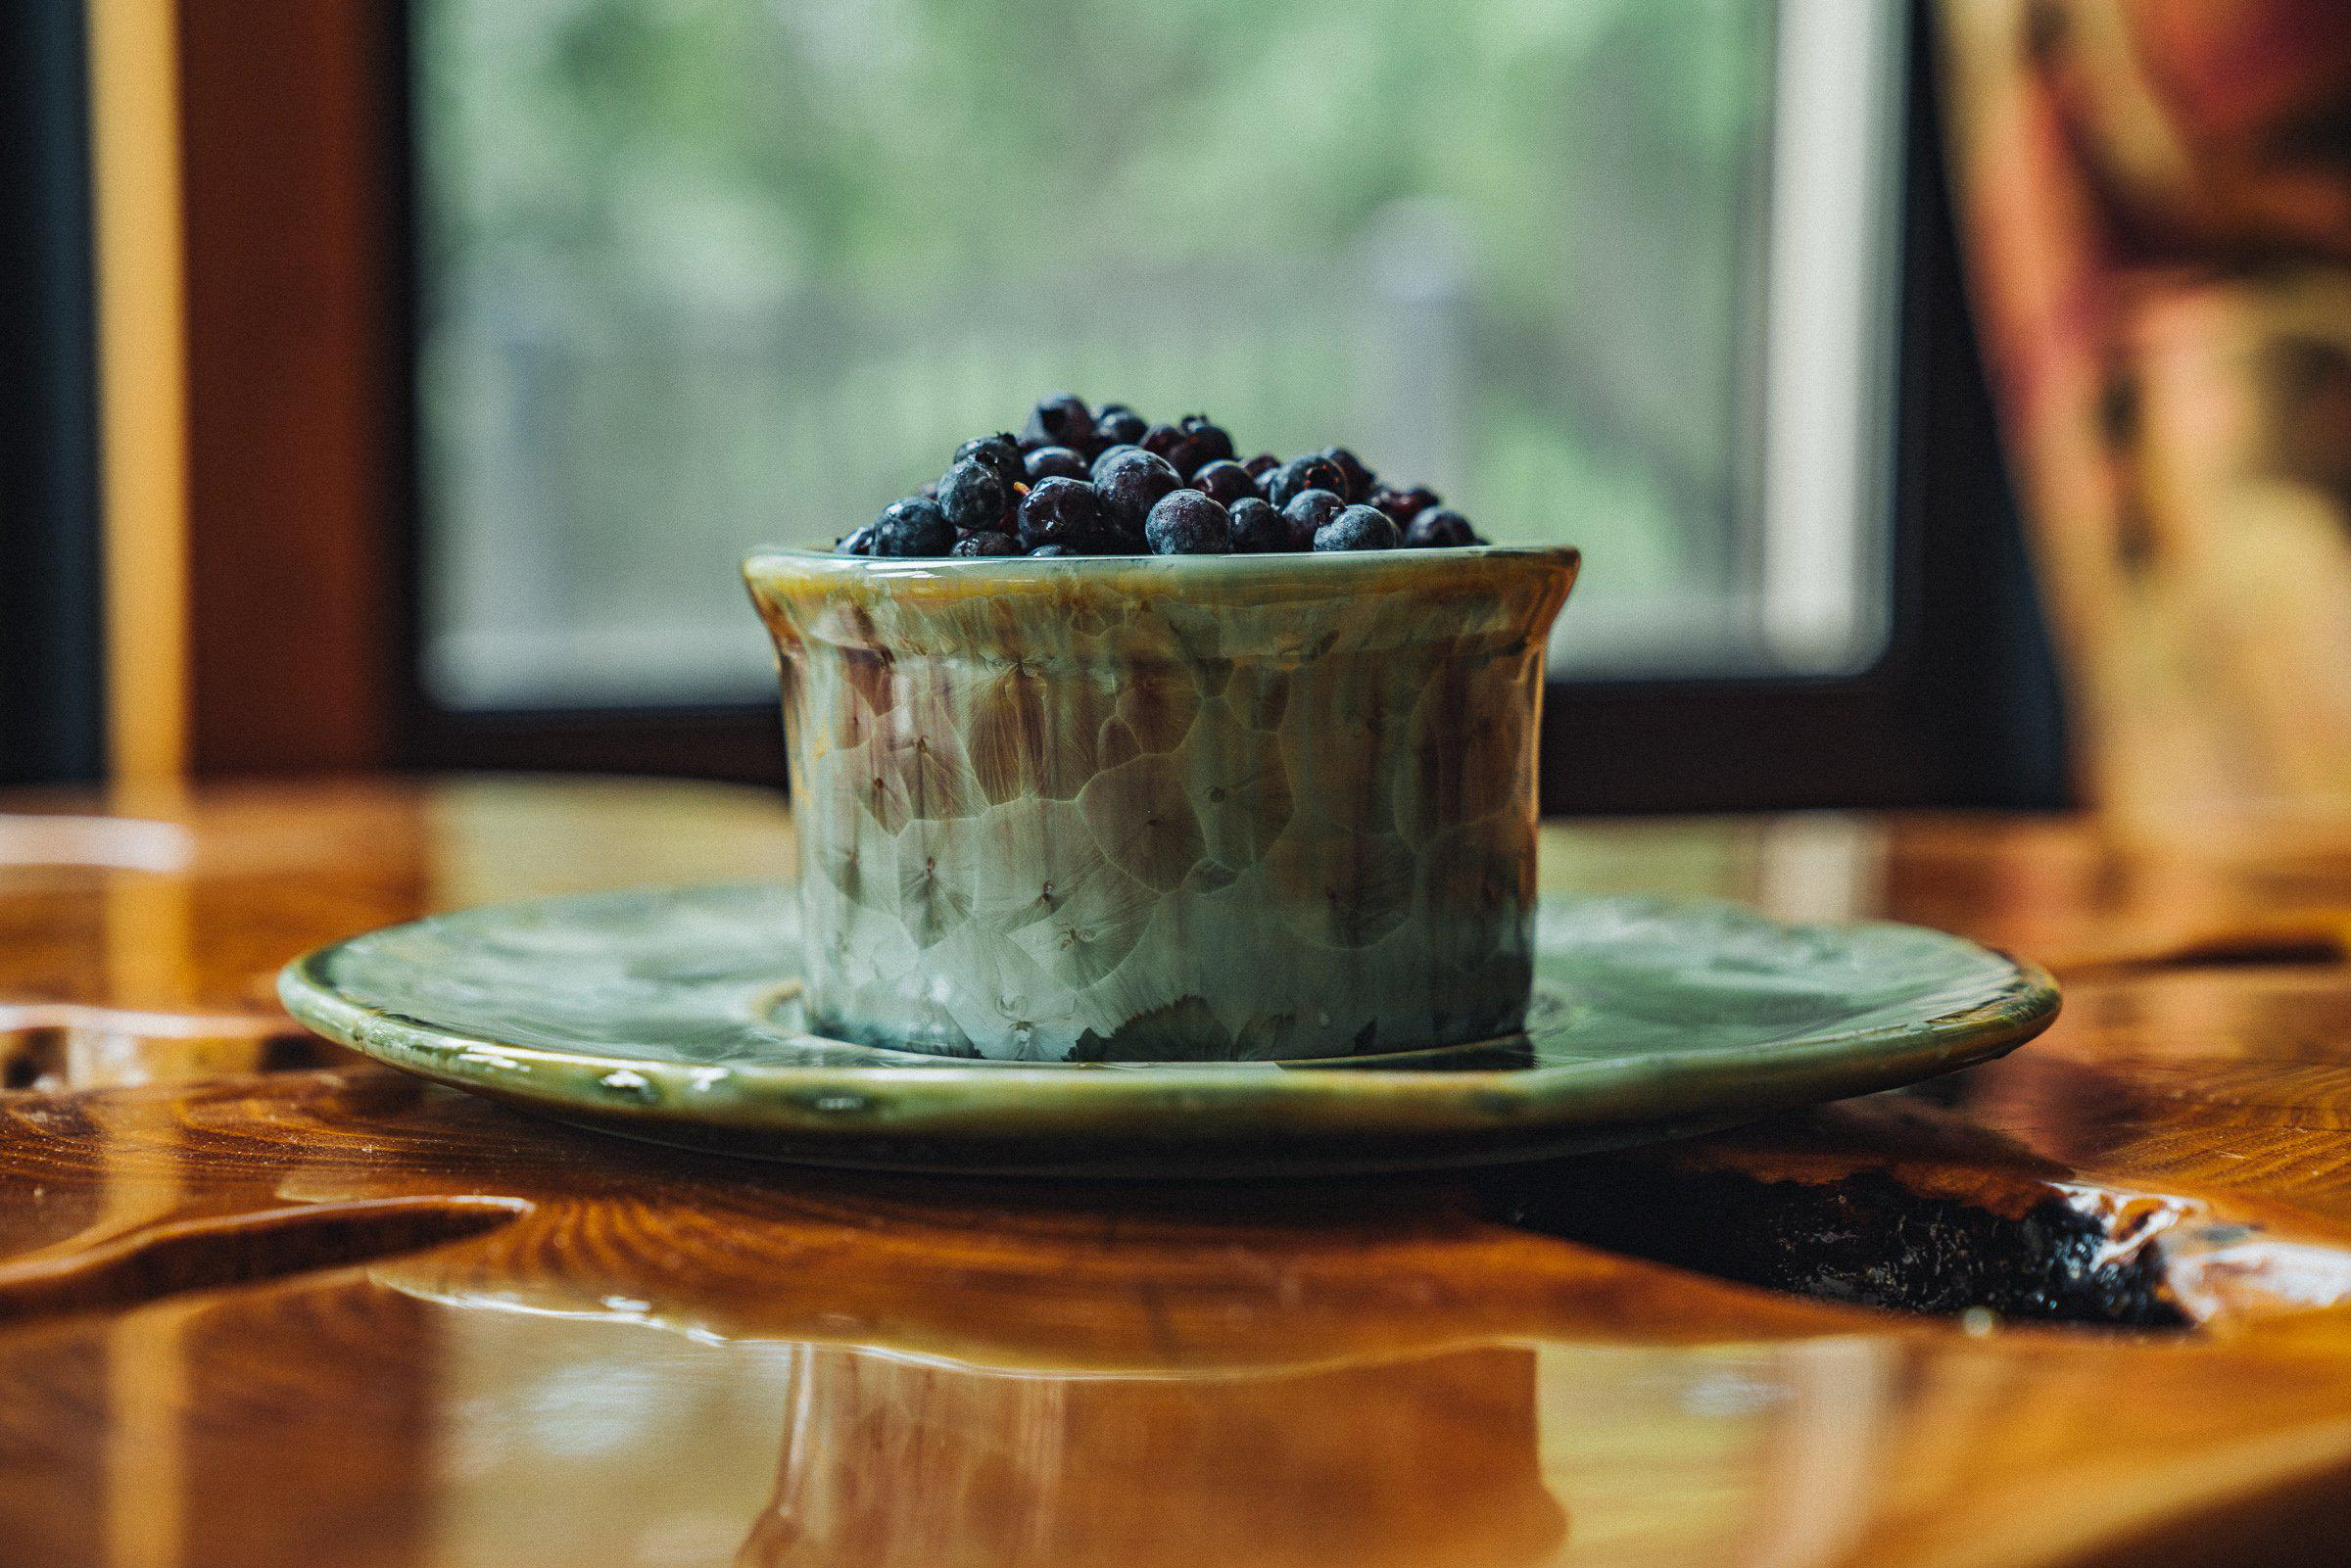 Appetizer - Bowl - Plate - blueberries -Saltmeadow Glaze - Serveware - Small Server - Pottery - Edgecomb Potters